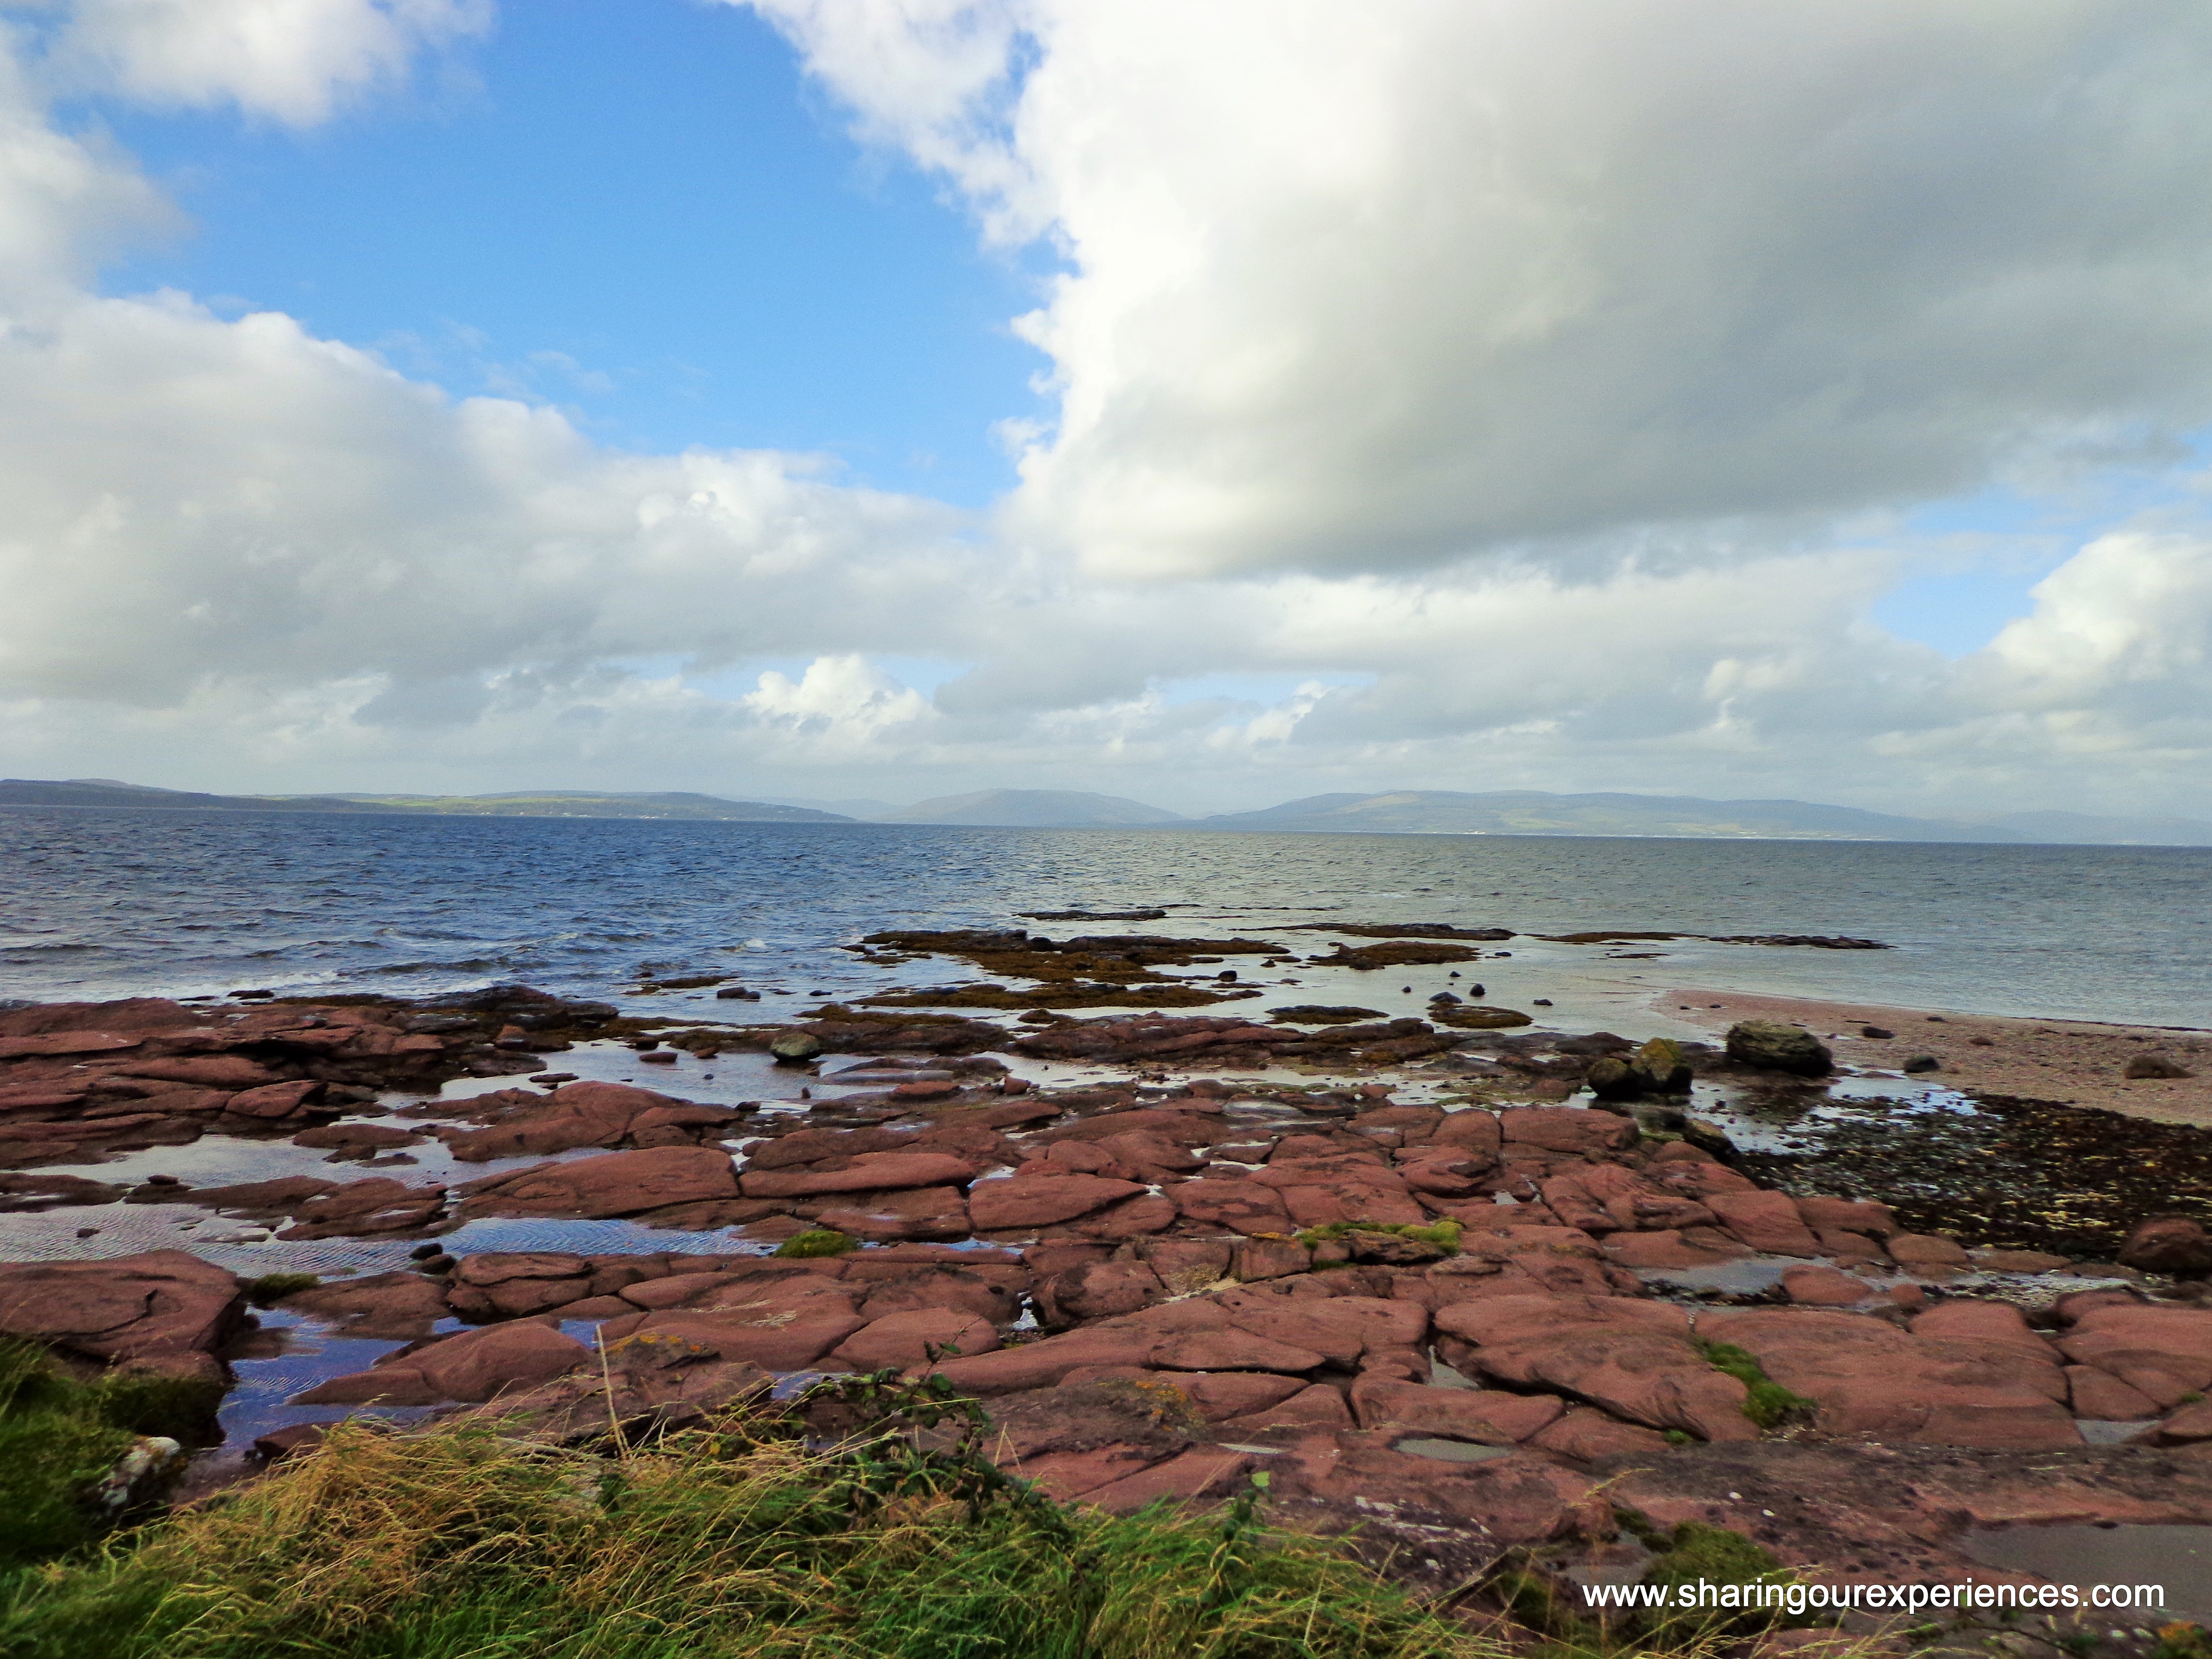 Day trip to Millport Isle of Cumbrae from Edinburgh Glasgow 8